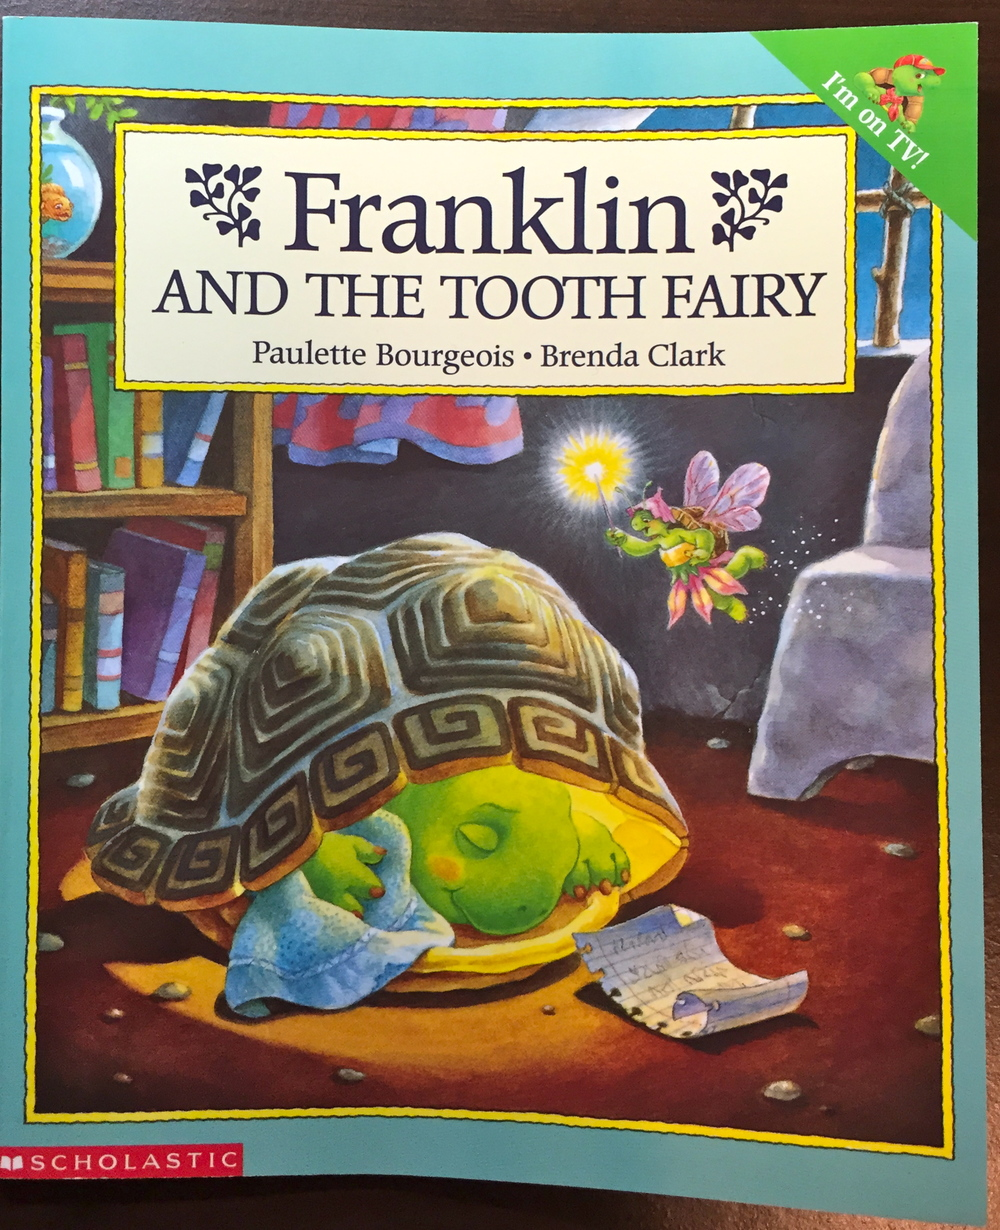 http://www.thousandoaksfamilydentistry.com/blog/2014/9/29/dental-library-review-franklin-and-the-tooth-fairy#.VCocSStdVDw=